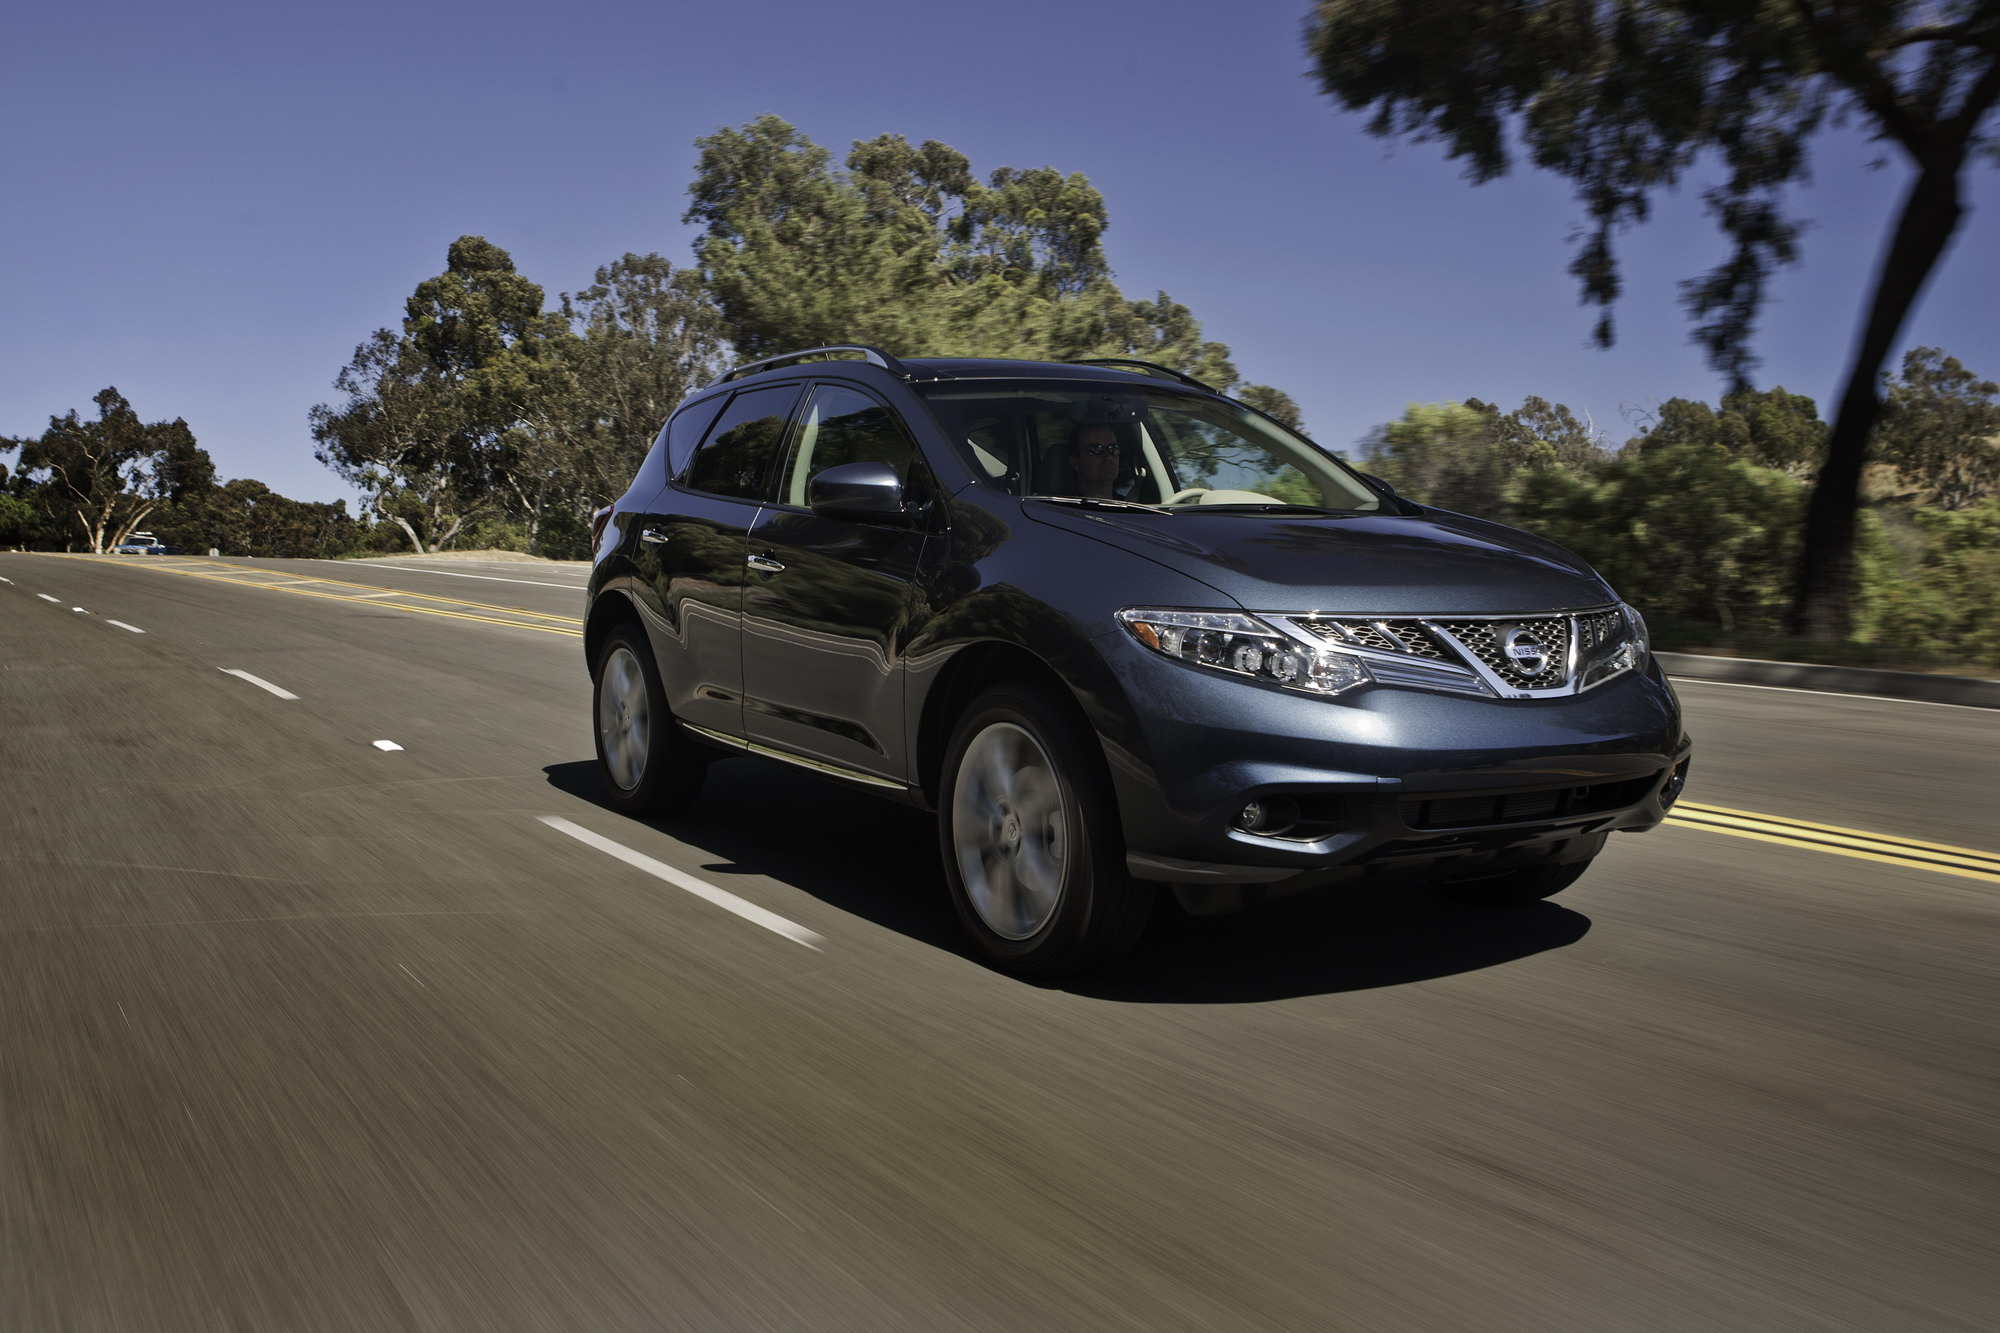 2011 nissan murano top speed. Black Bedroom Furniture Sets. Home Design Ideas